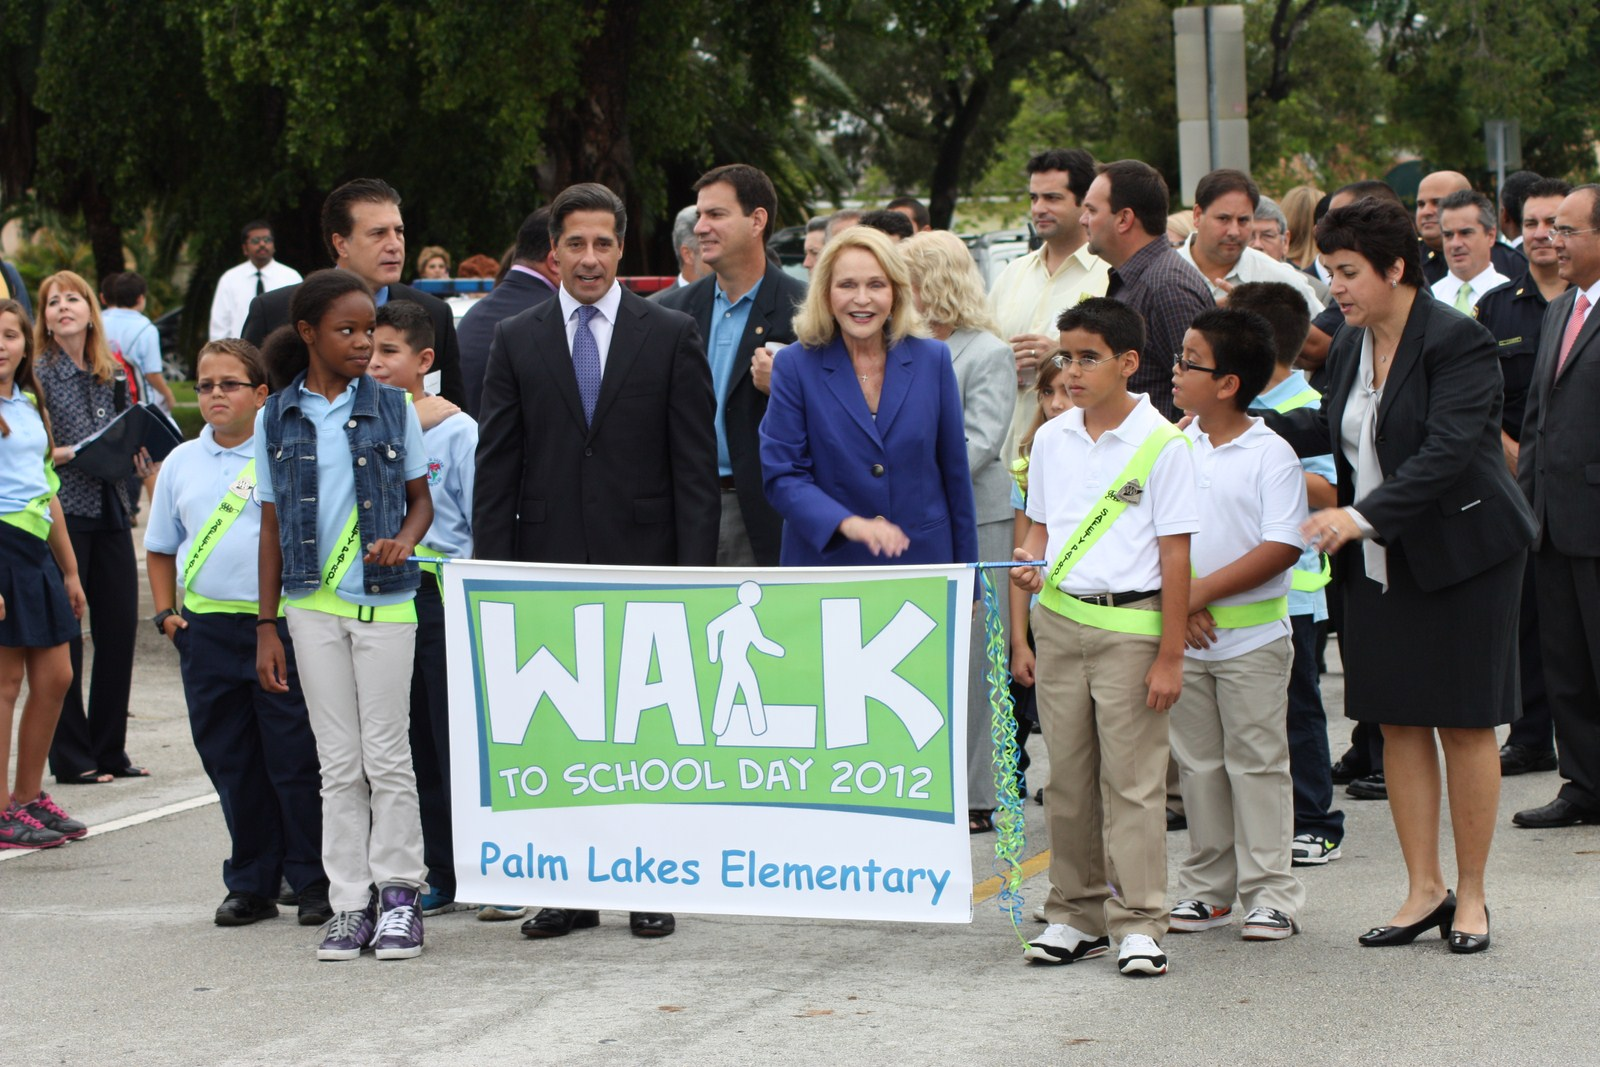 Walk to School Day 2012